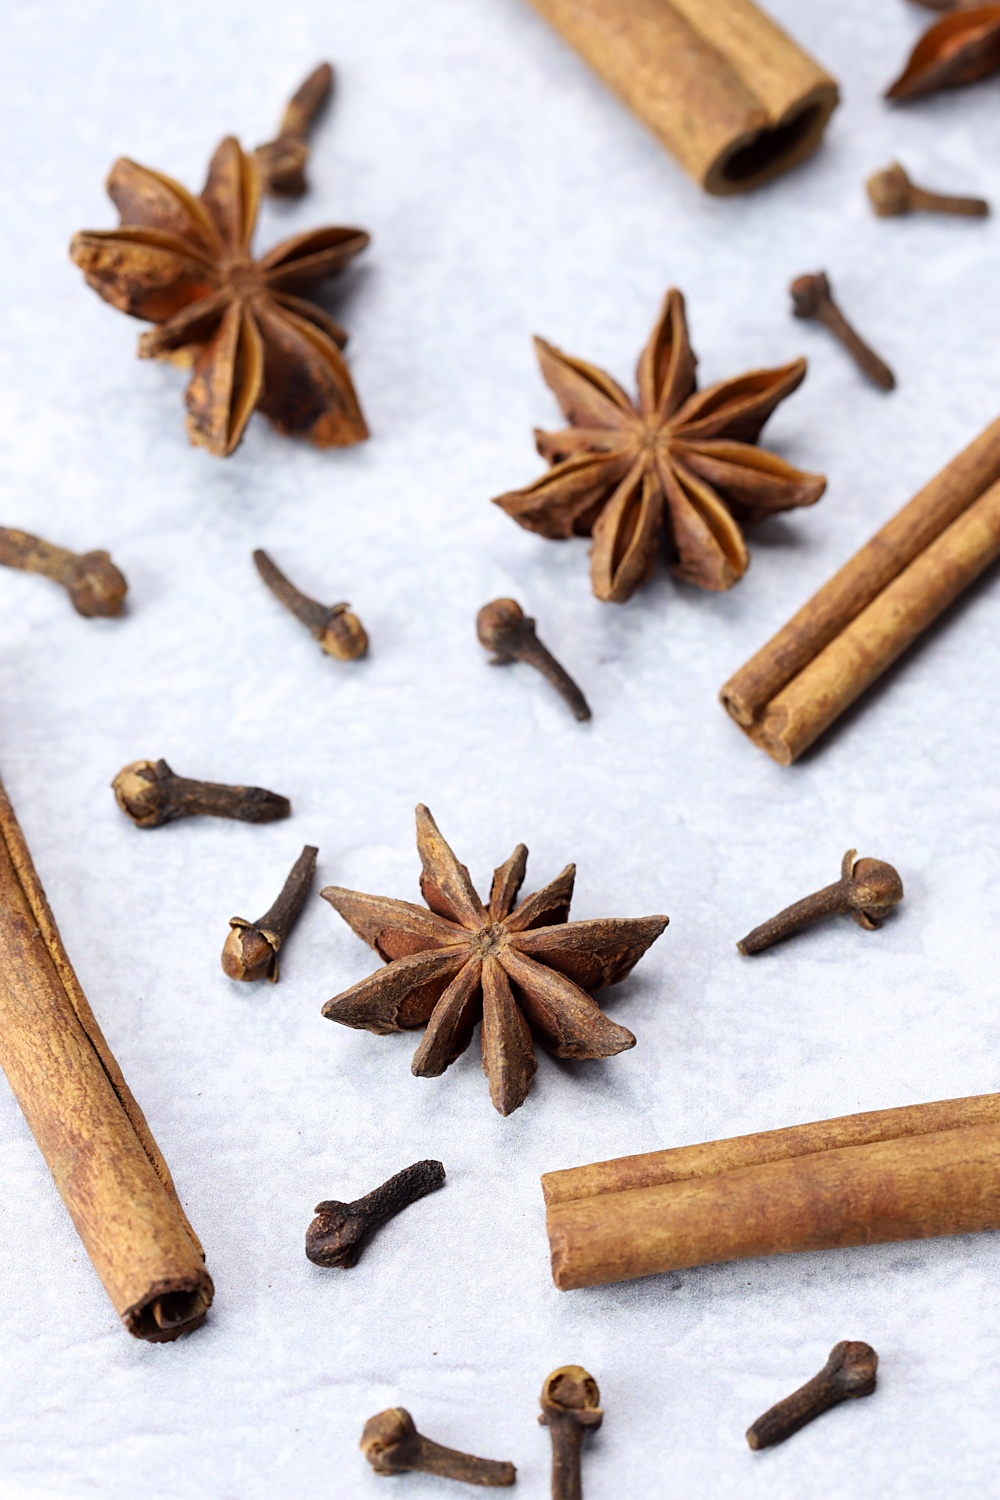 Cinnamon sticks, star anise, and cloves scattered on a surface.